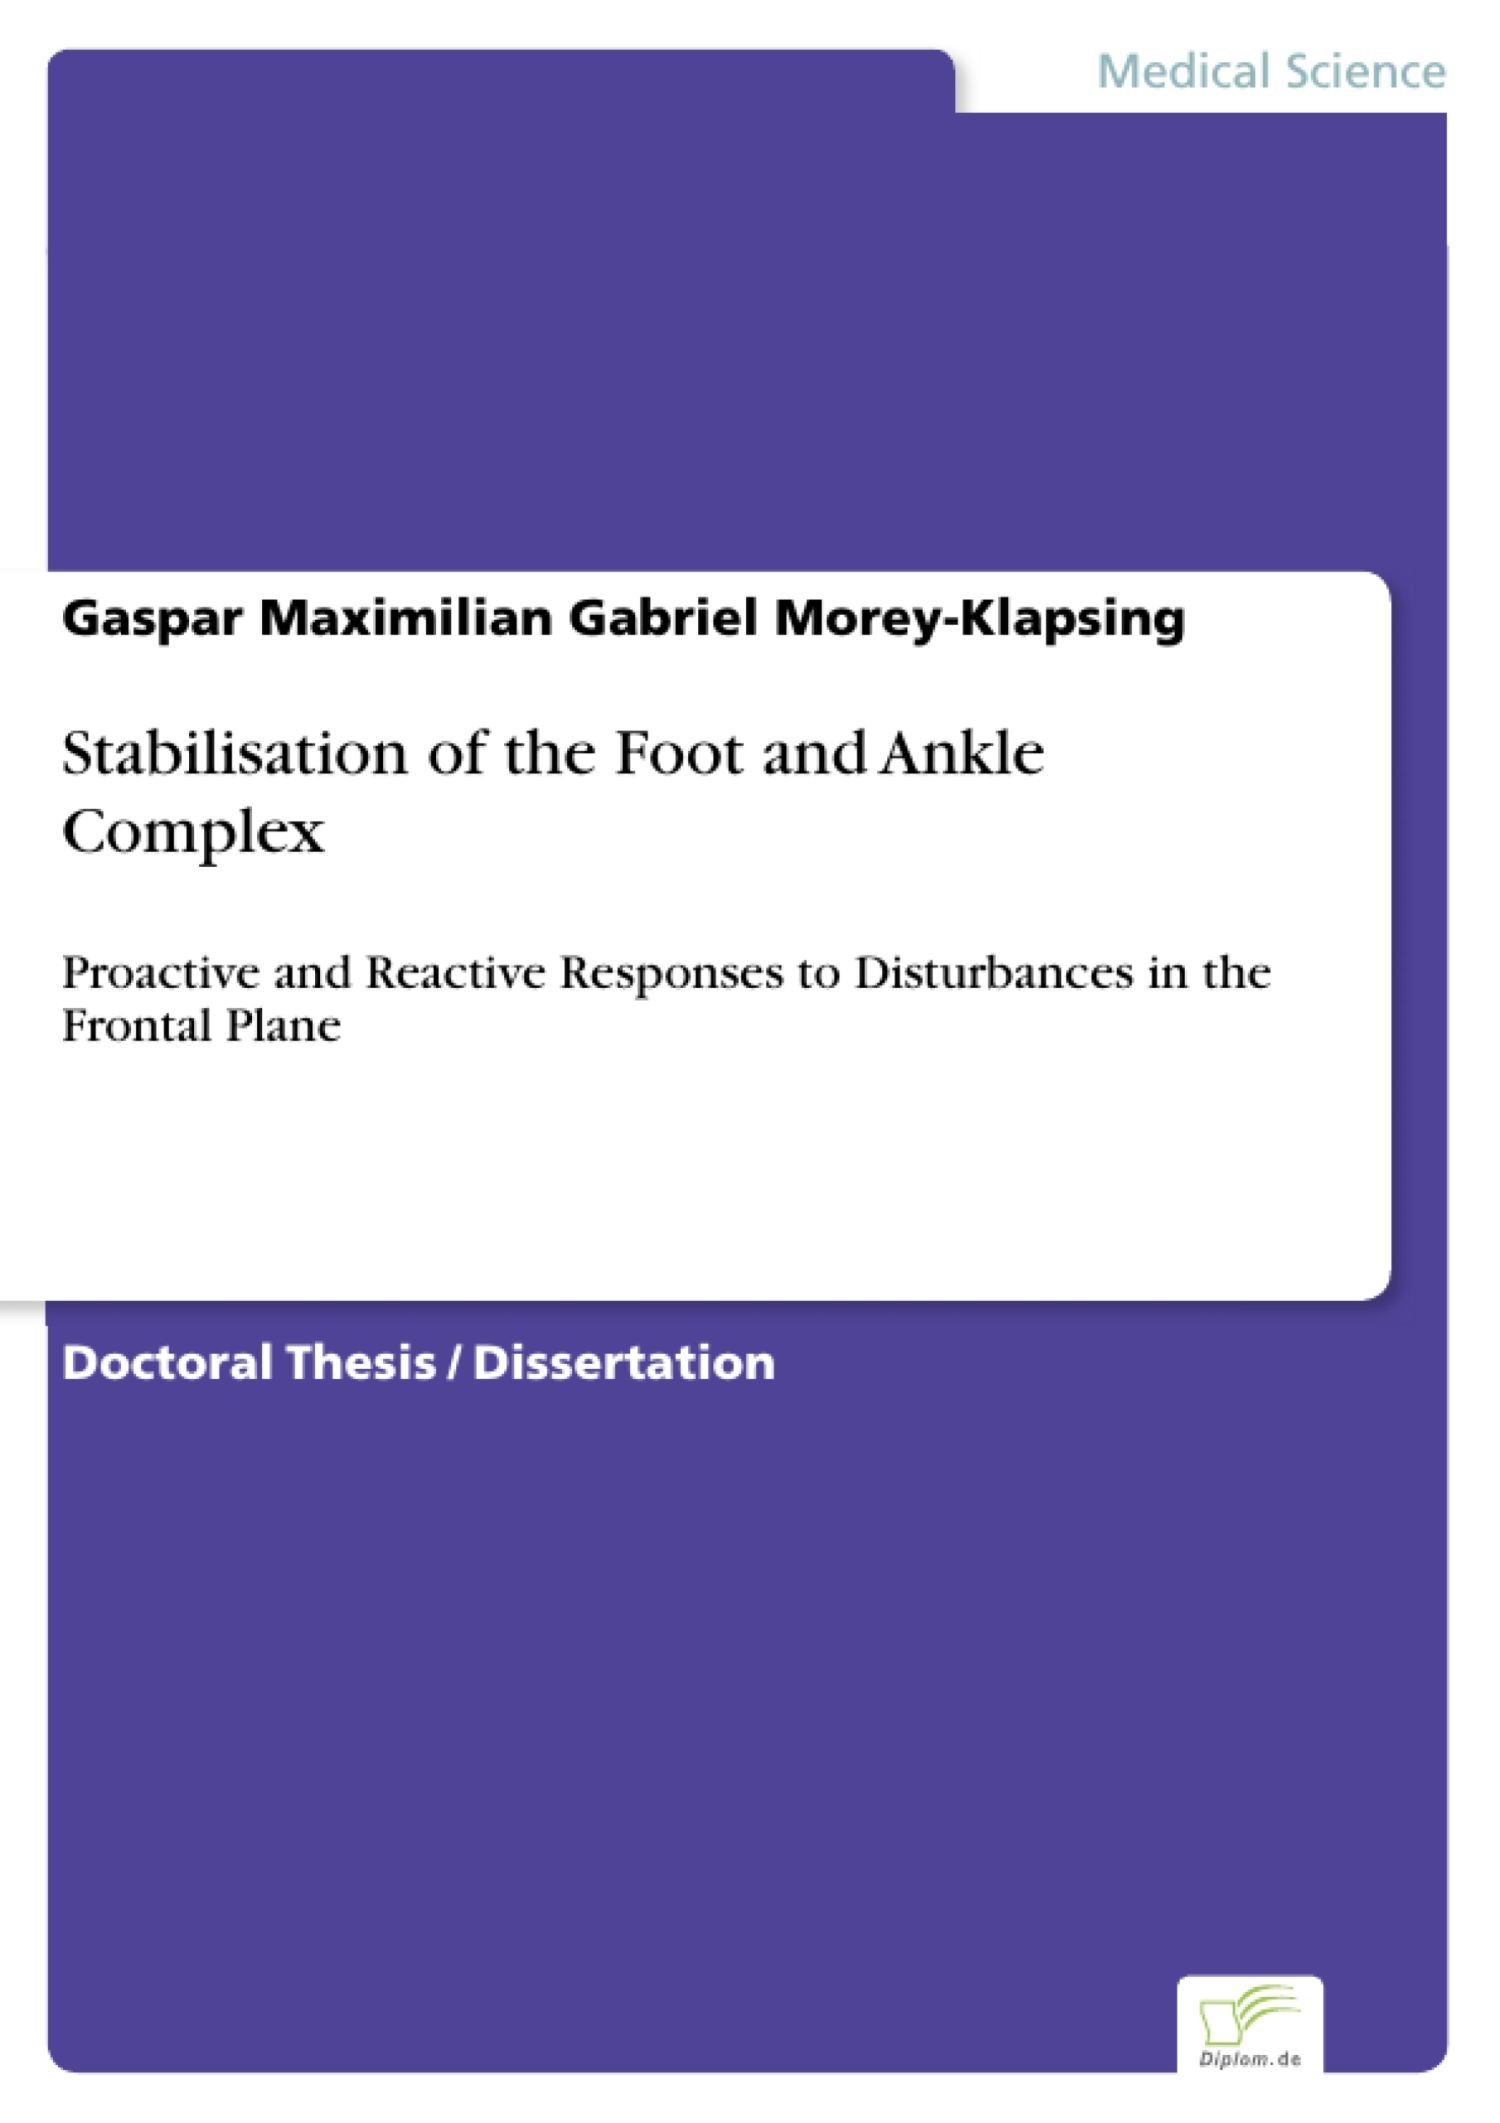 Stabilisation of the Foot and Ankle Complex